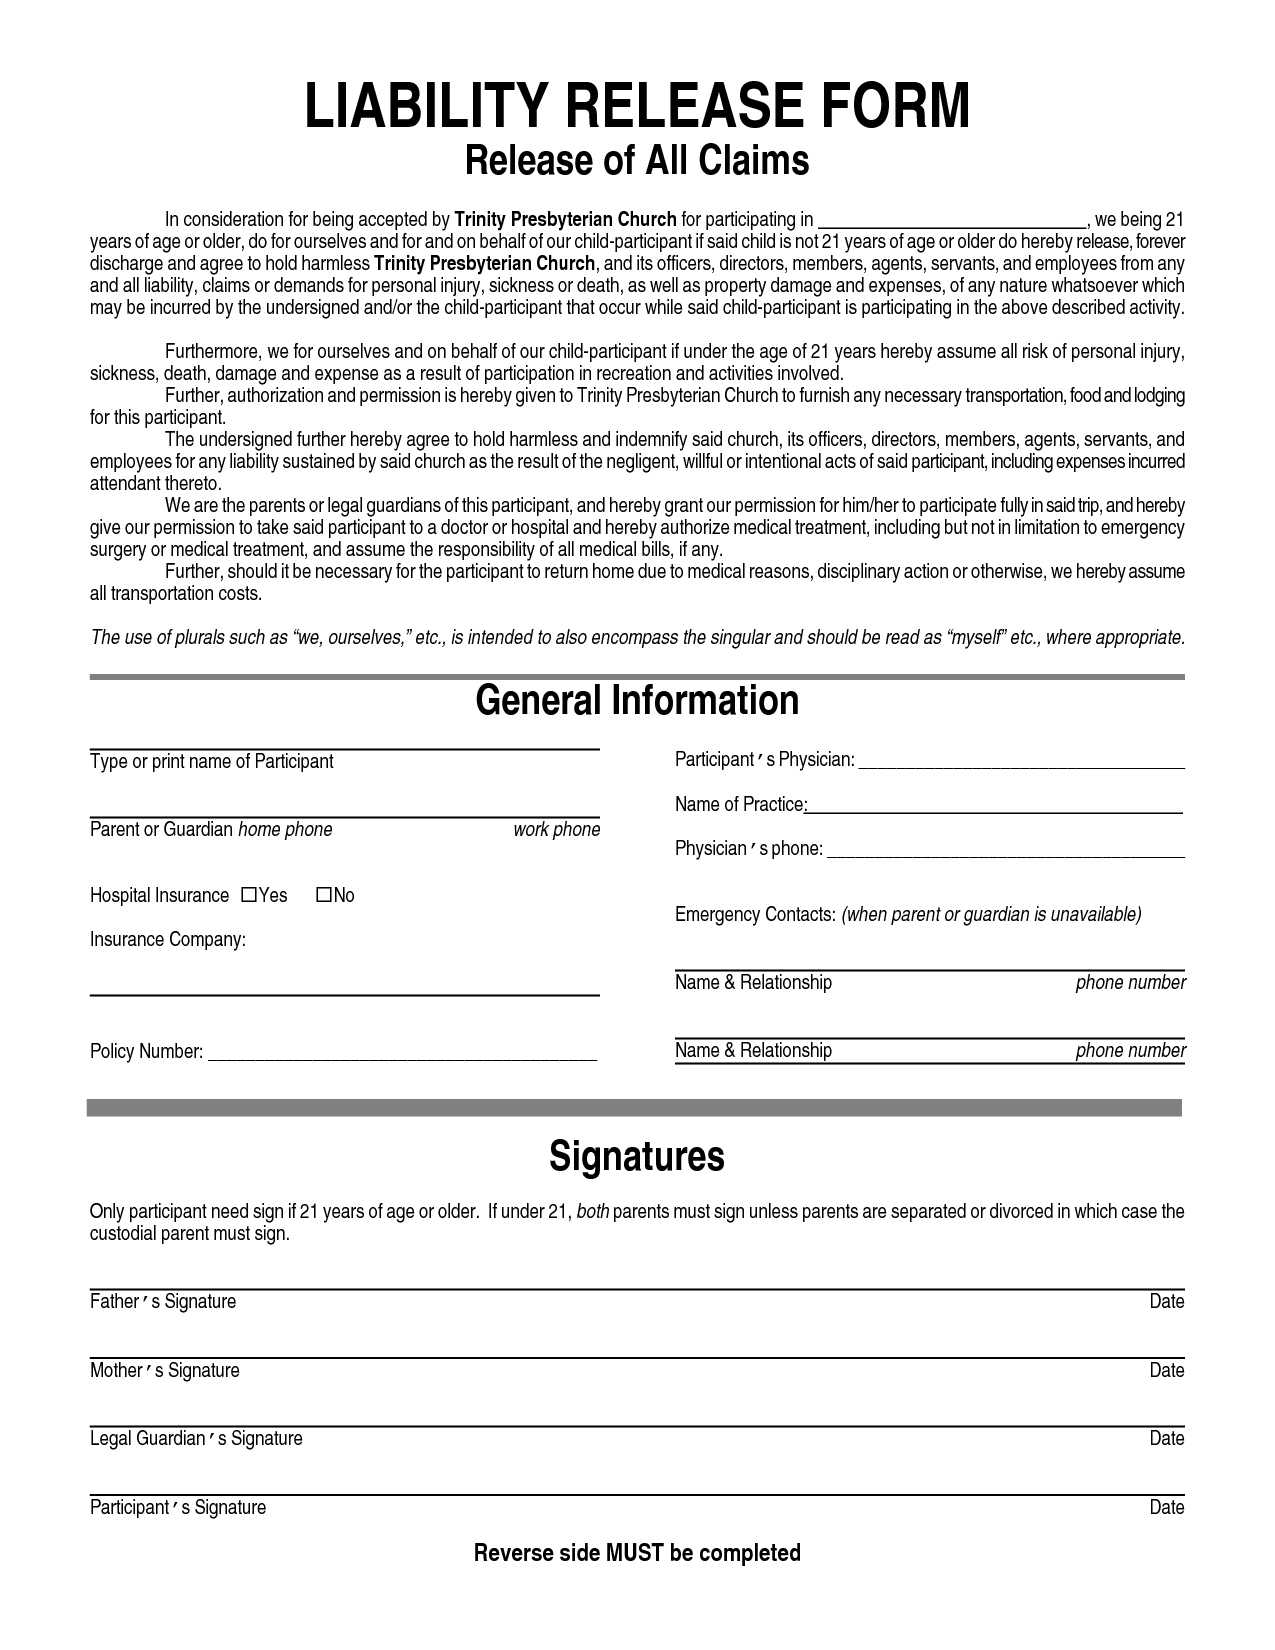 Printable Sample Liability Form Form | Free Legal Documents - Free Printable Legal Documents Forms